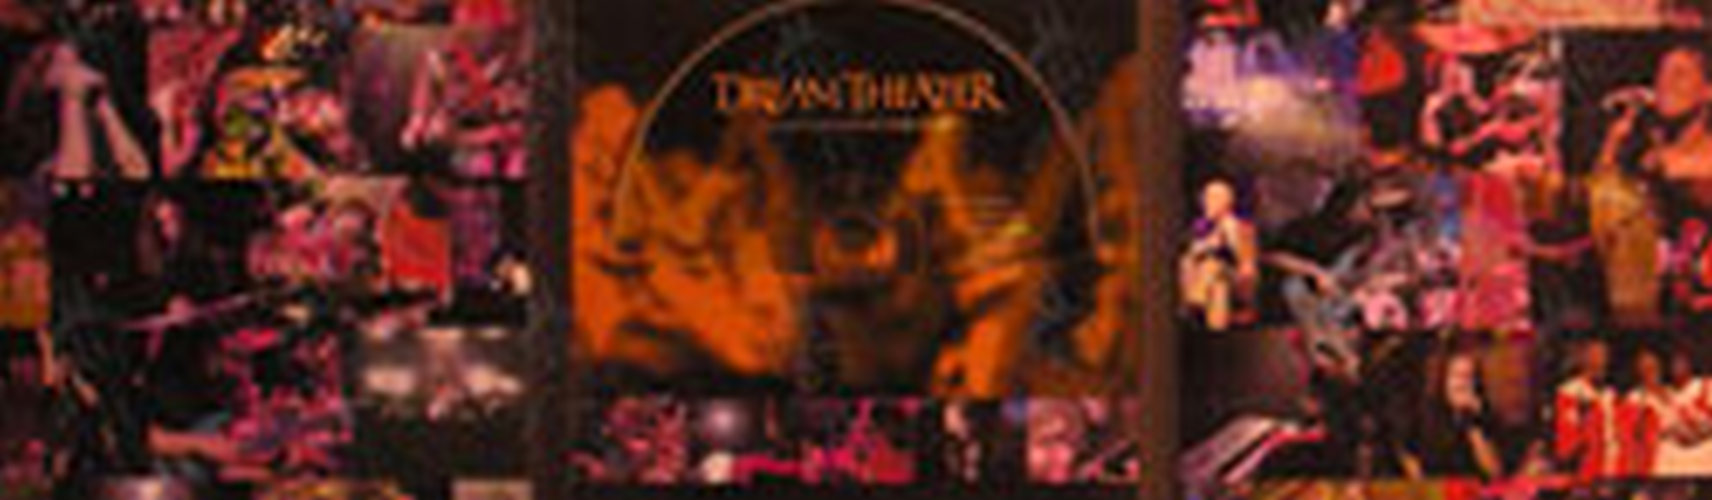 DREAM THEATER - Live Scenes From New York - 3